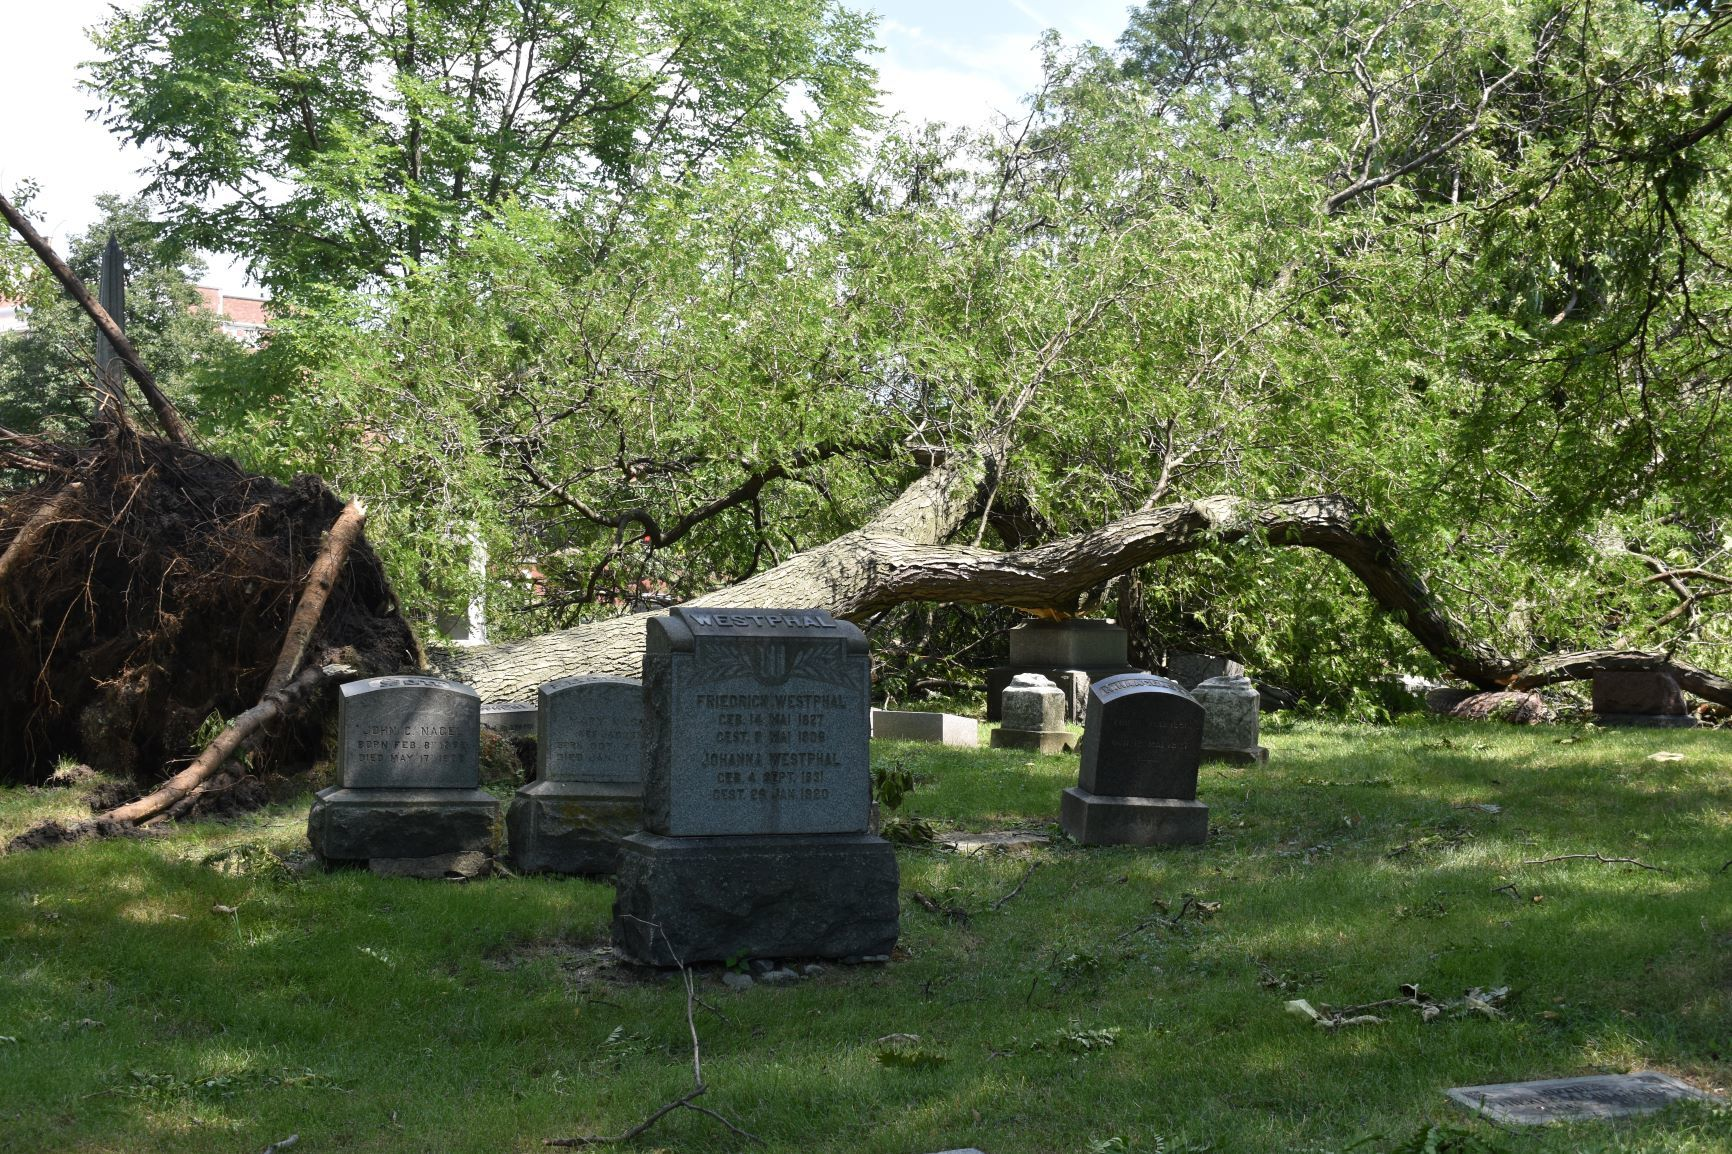 Check out before and after photos of Graceland Cemetery, newly reopened after last month's derecho